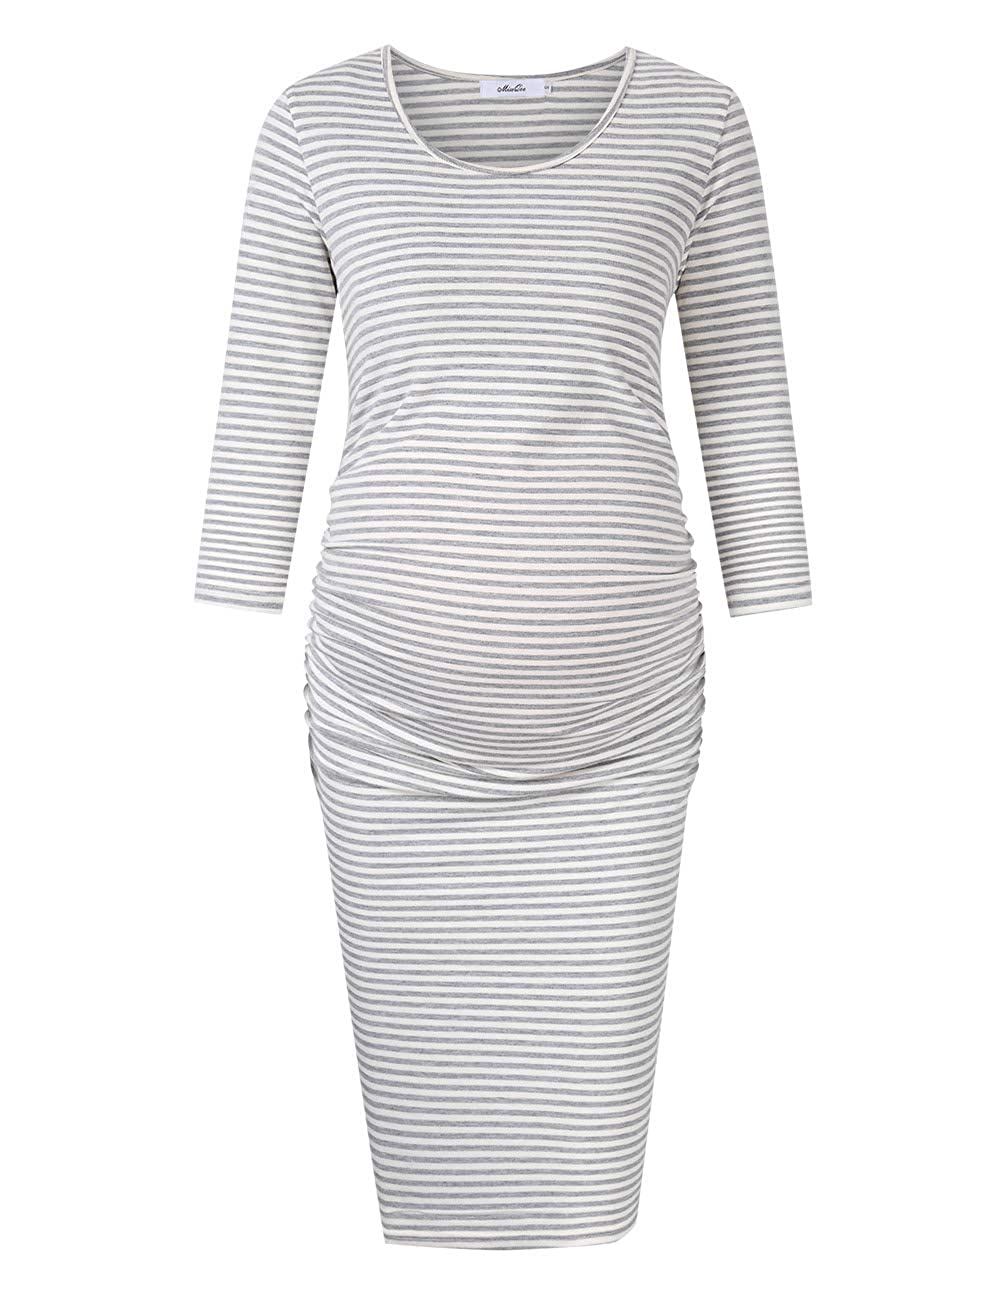 a710a9029e6b5 Coolmee MissQee Maternity Dress Ruched Round Neck Maternity Dresses  X7-H698-8YZA Wear to Work